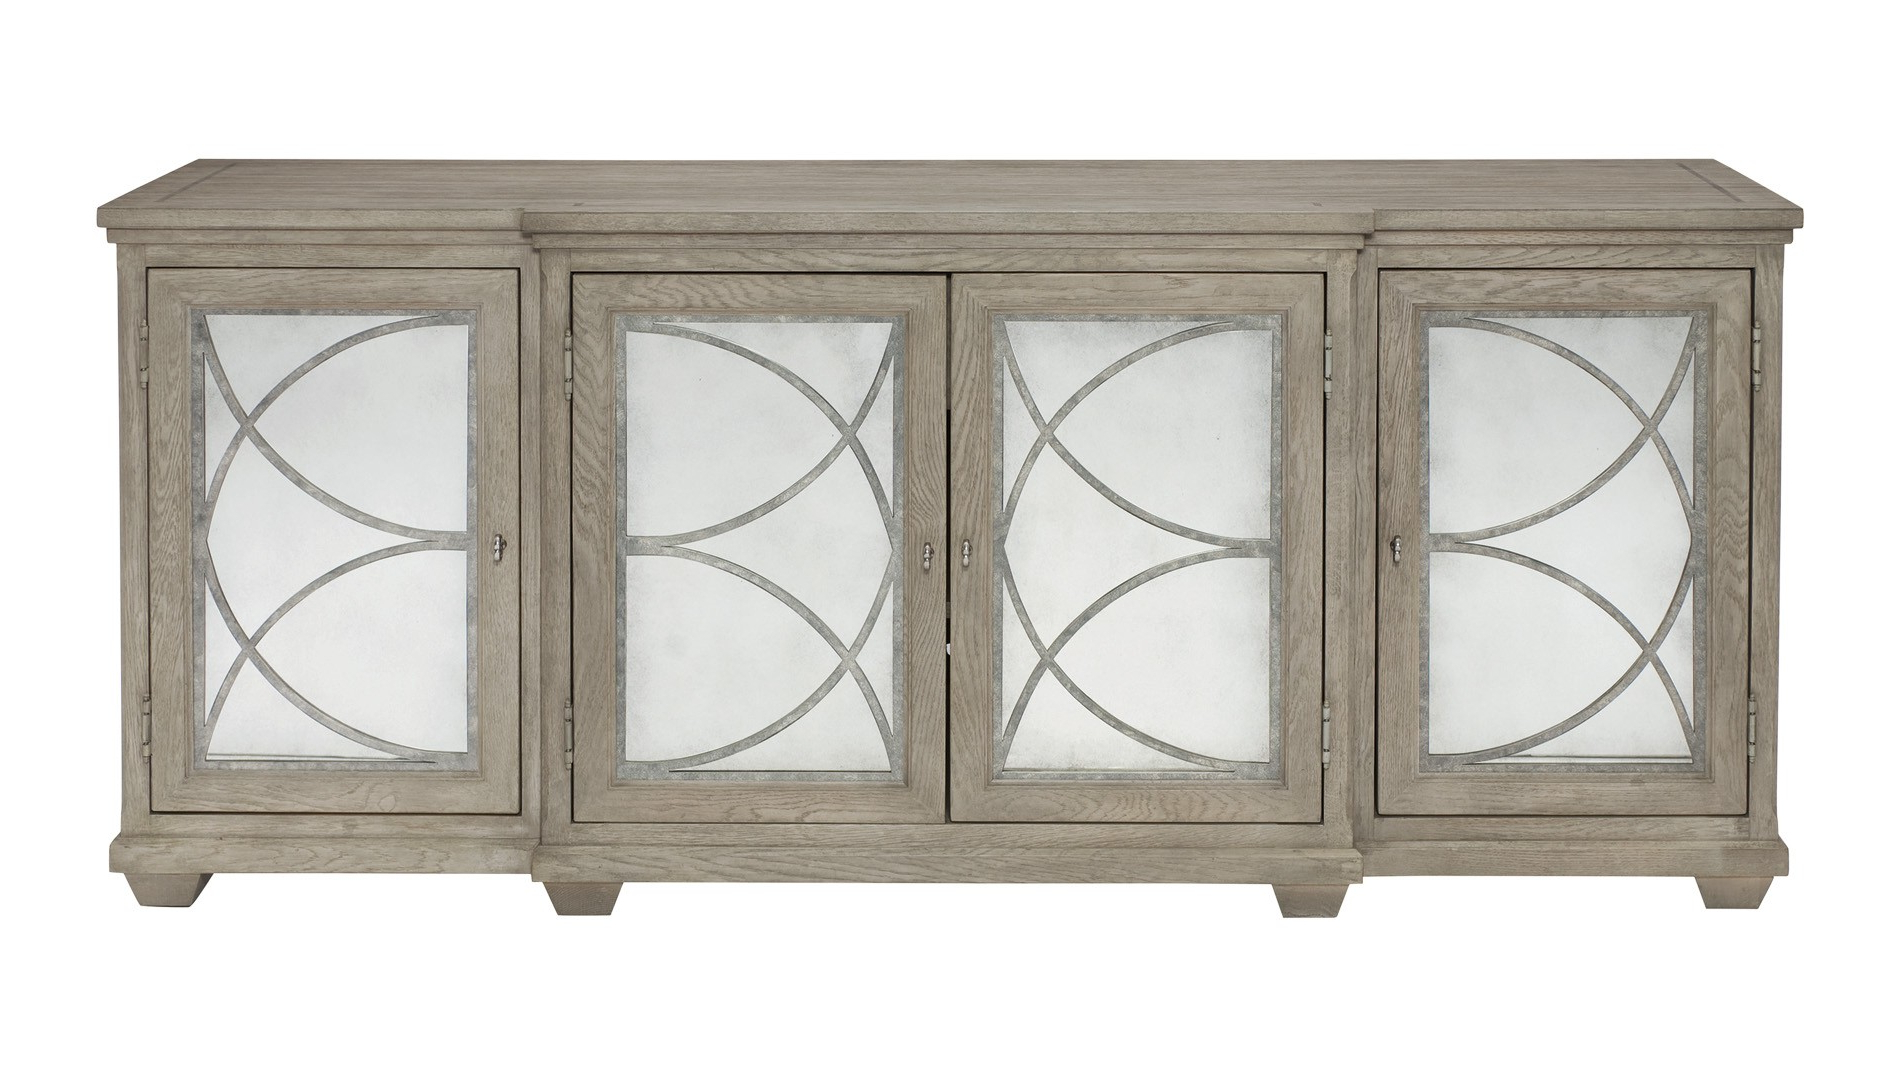 Well Liked Bernhardt, Marquesa Sideboard – Antique Mirror, Buy Online At Luxdeco Intended For Aged Mirrored 4 Door Sideboards (Gallery 4 of 20)